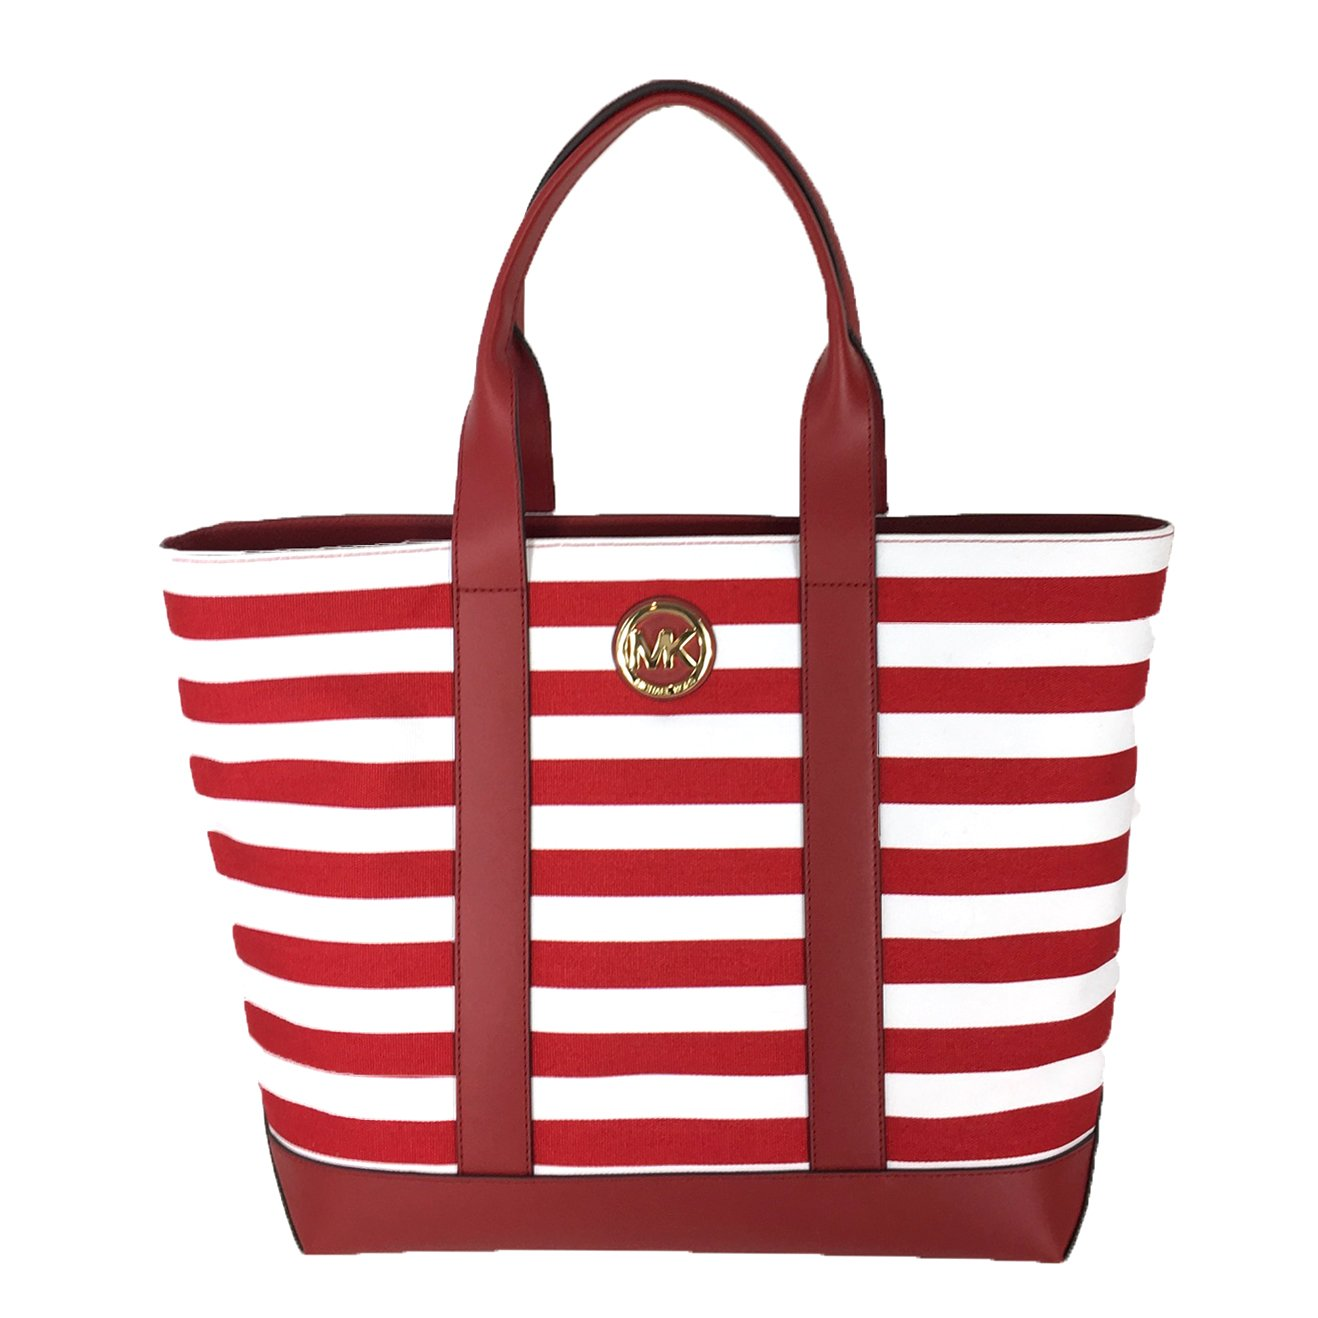 32e0e952b285c5 Michael Kors Fulton Striped Canvas Large Tote, Red/White: Handbags:  Amazon.com